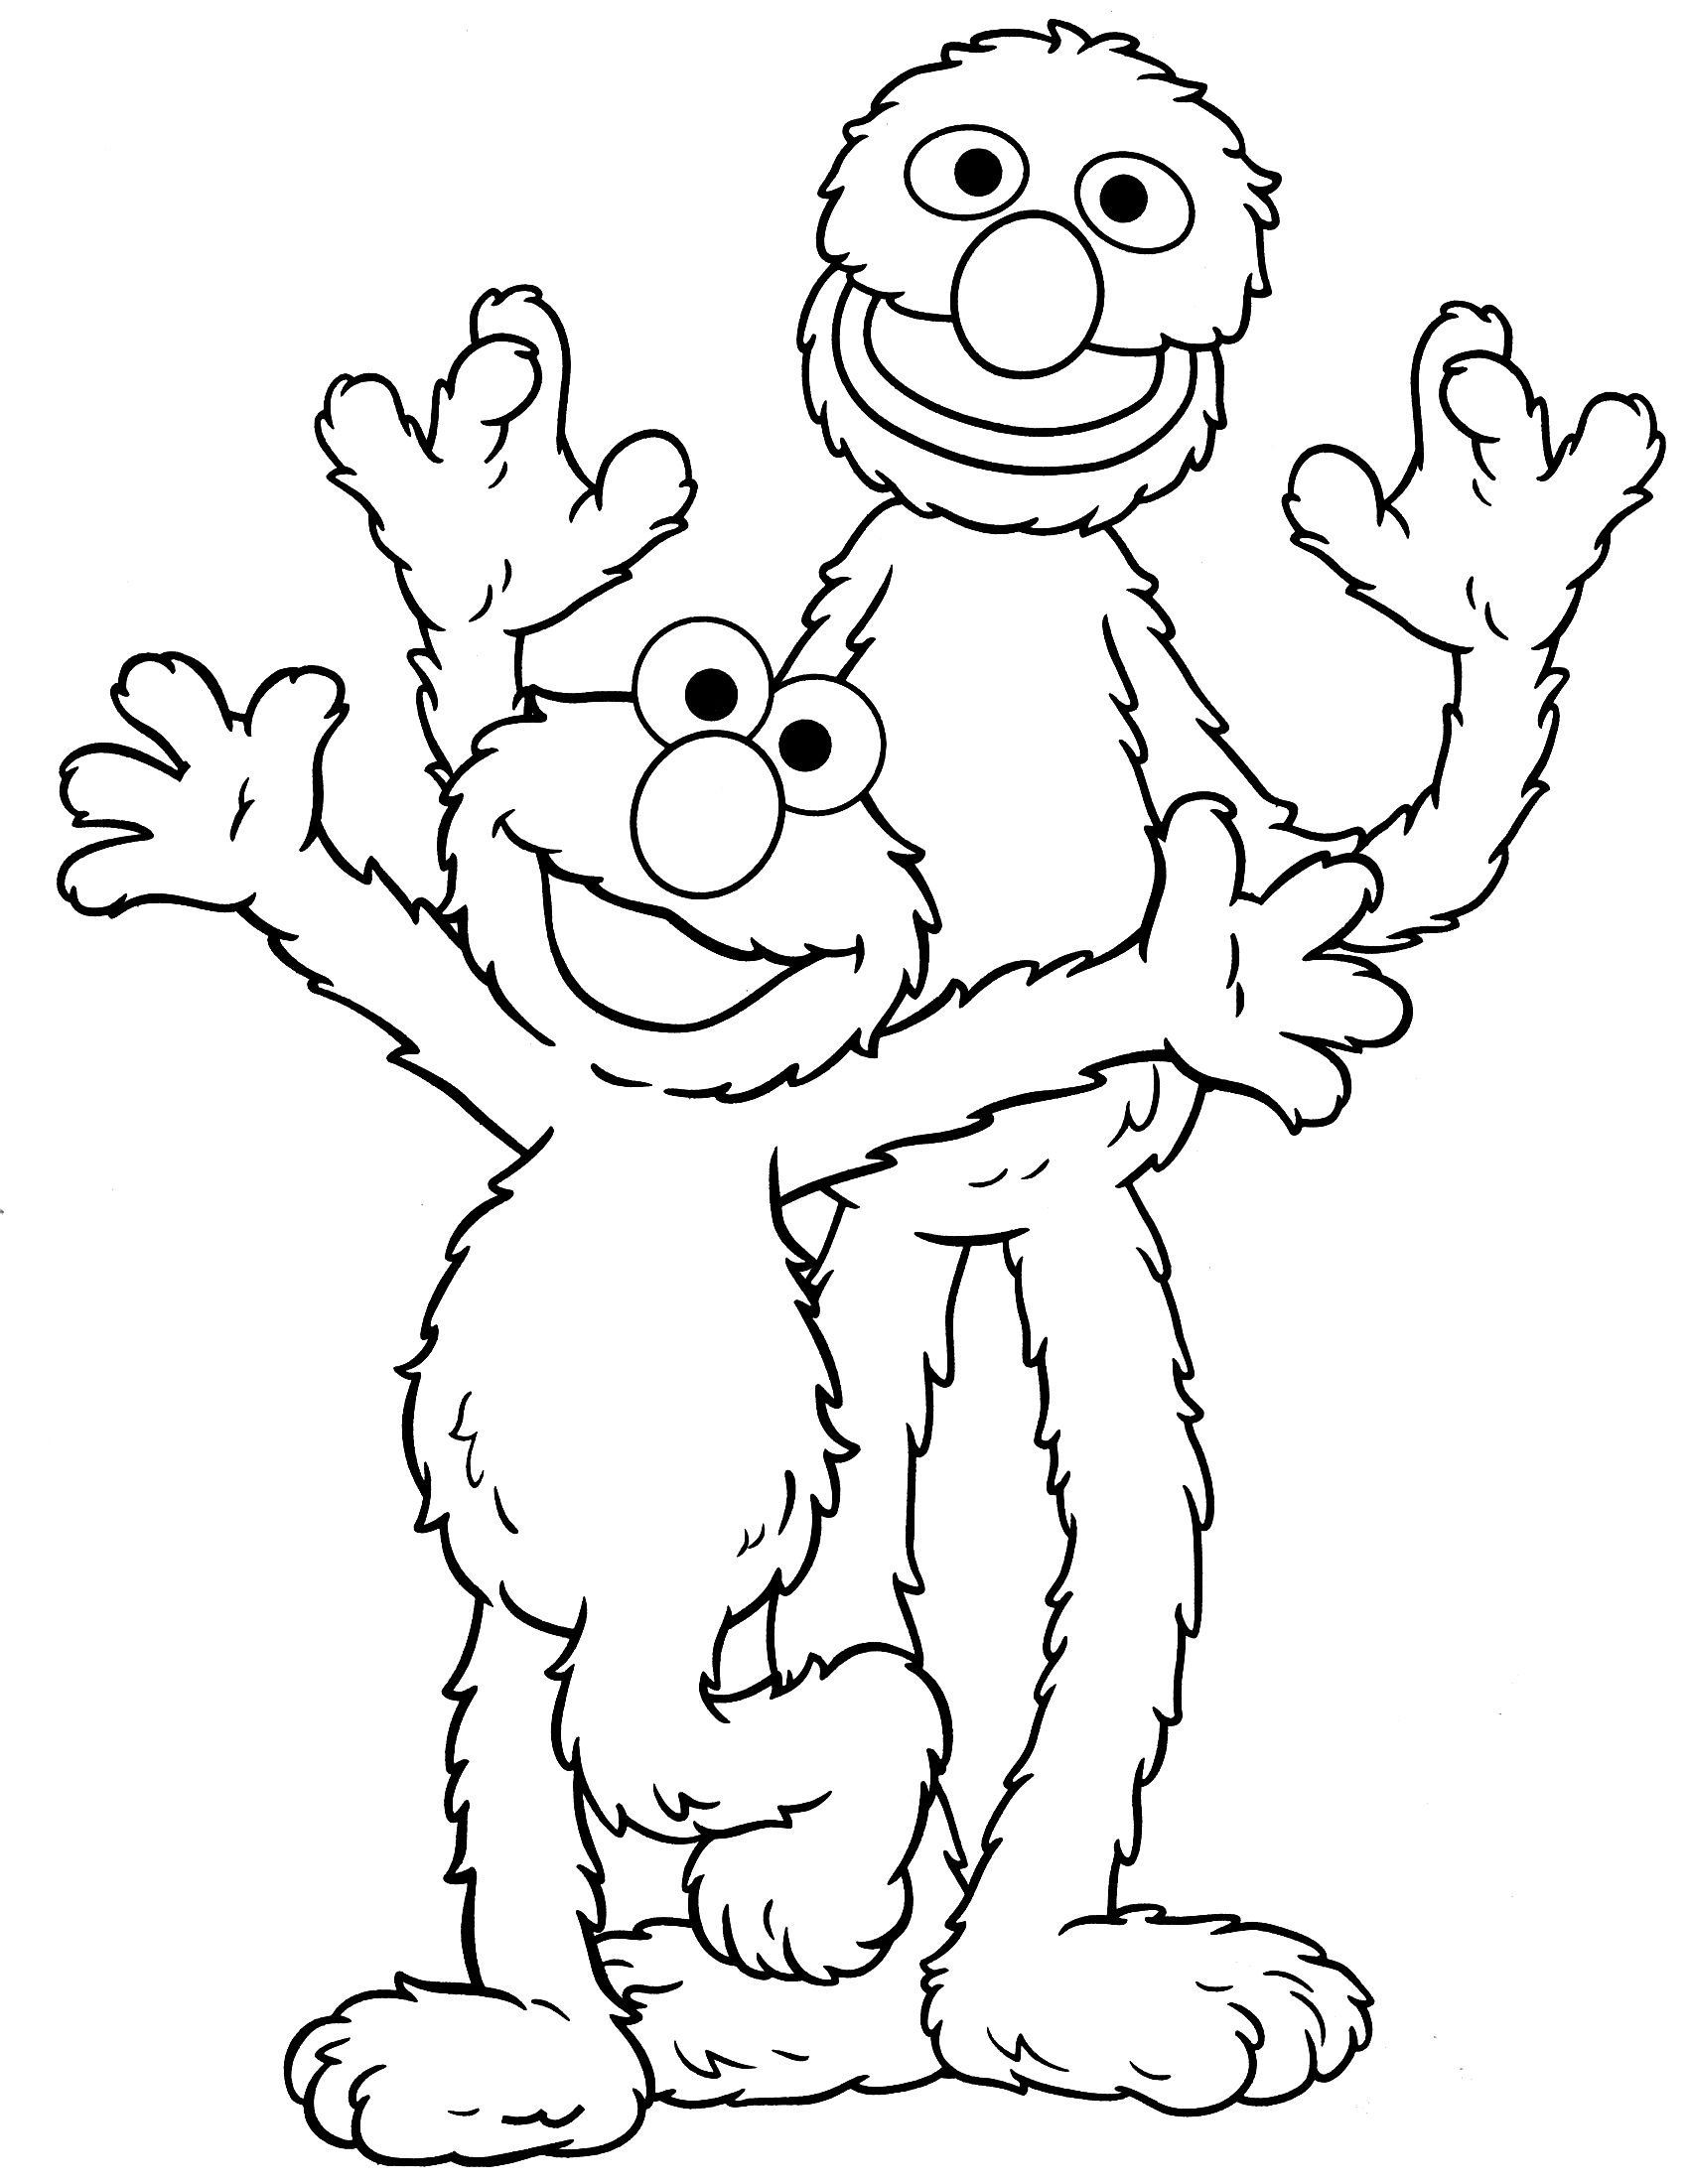 Coloring Pages Sesame Street Color Pages 1000 images about sesame street on pinterest coloring free printable pages and the muppets